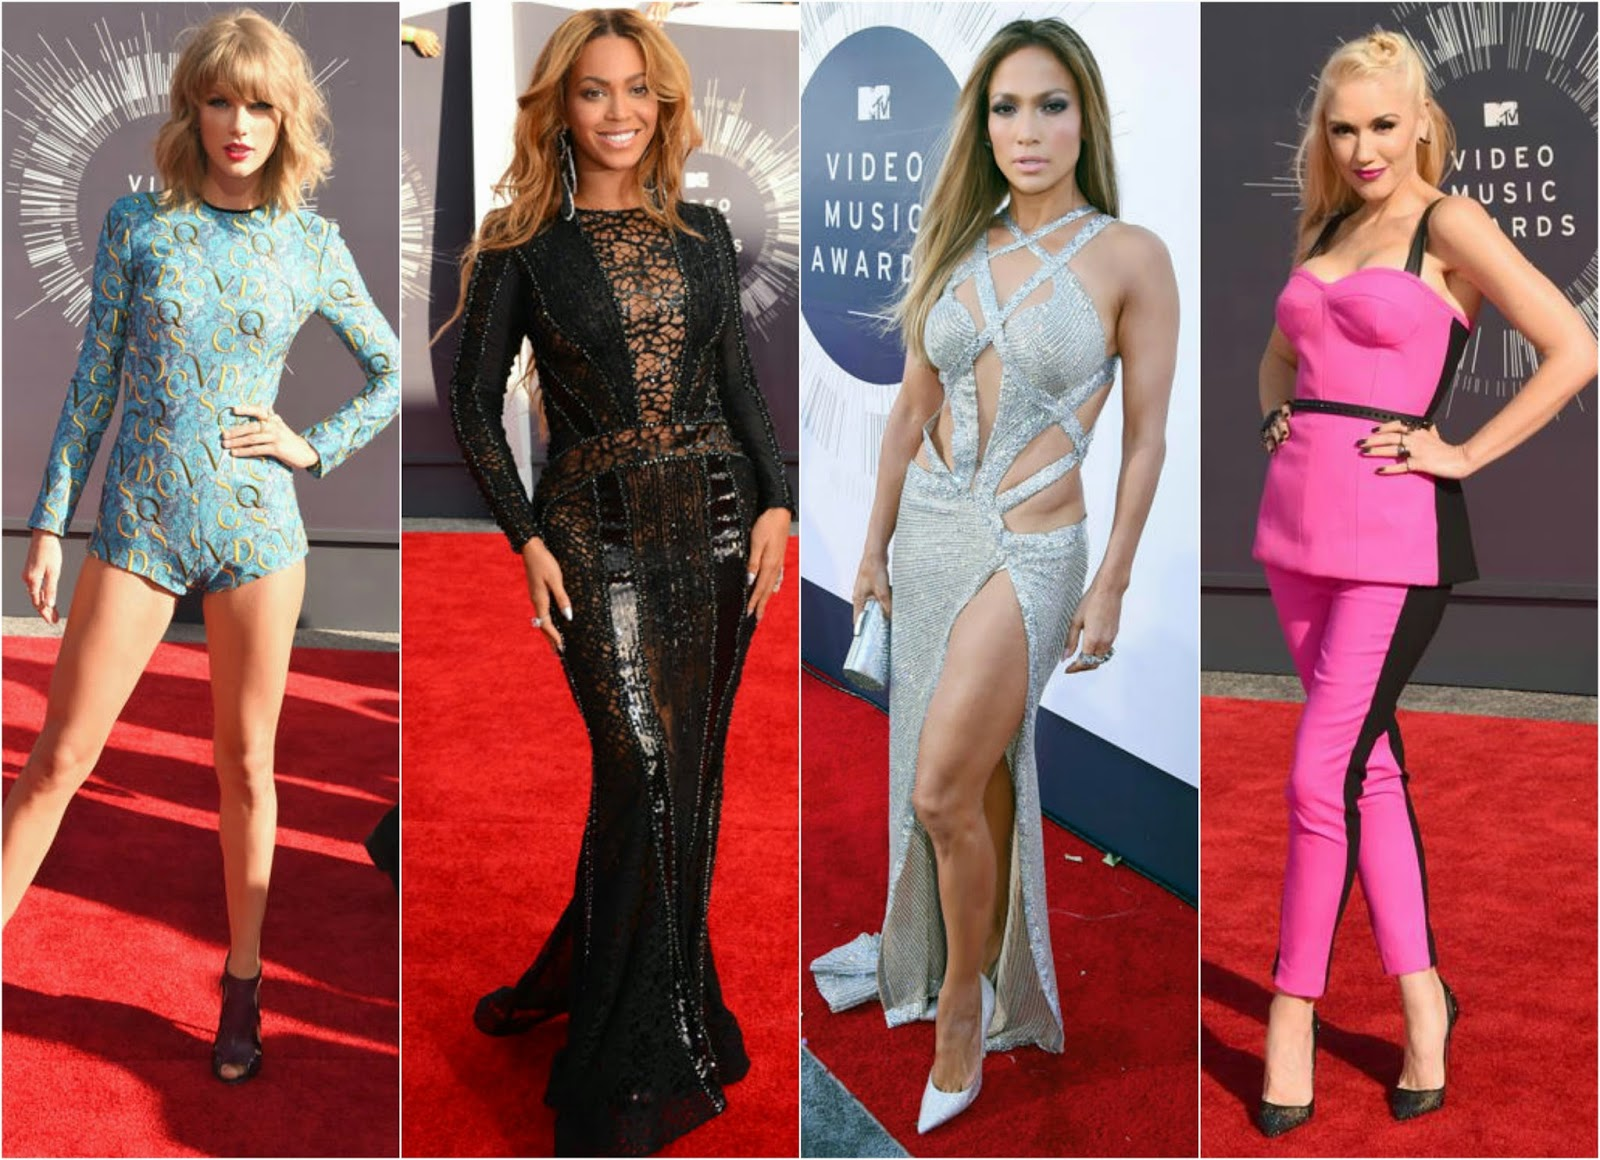 http://www.syriouslyinfashion.com/2014/08/mtv-vma-2014-red-carpet-make-up.html